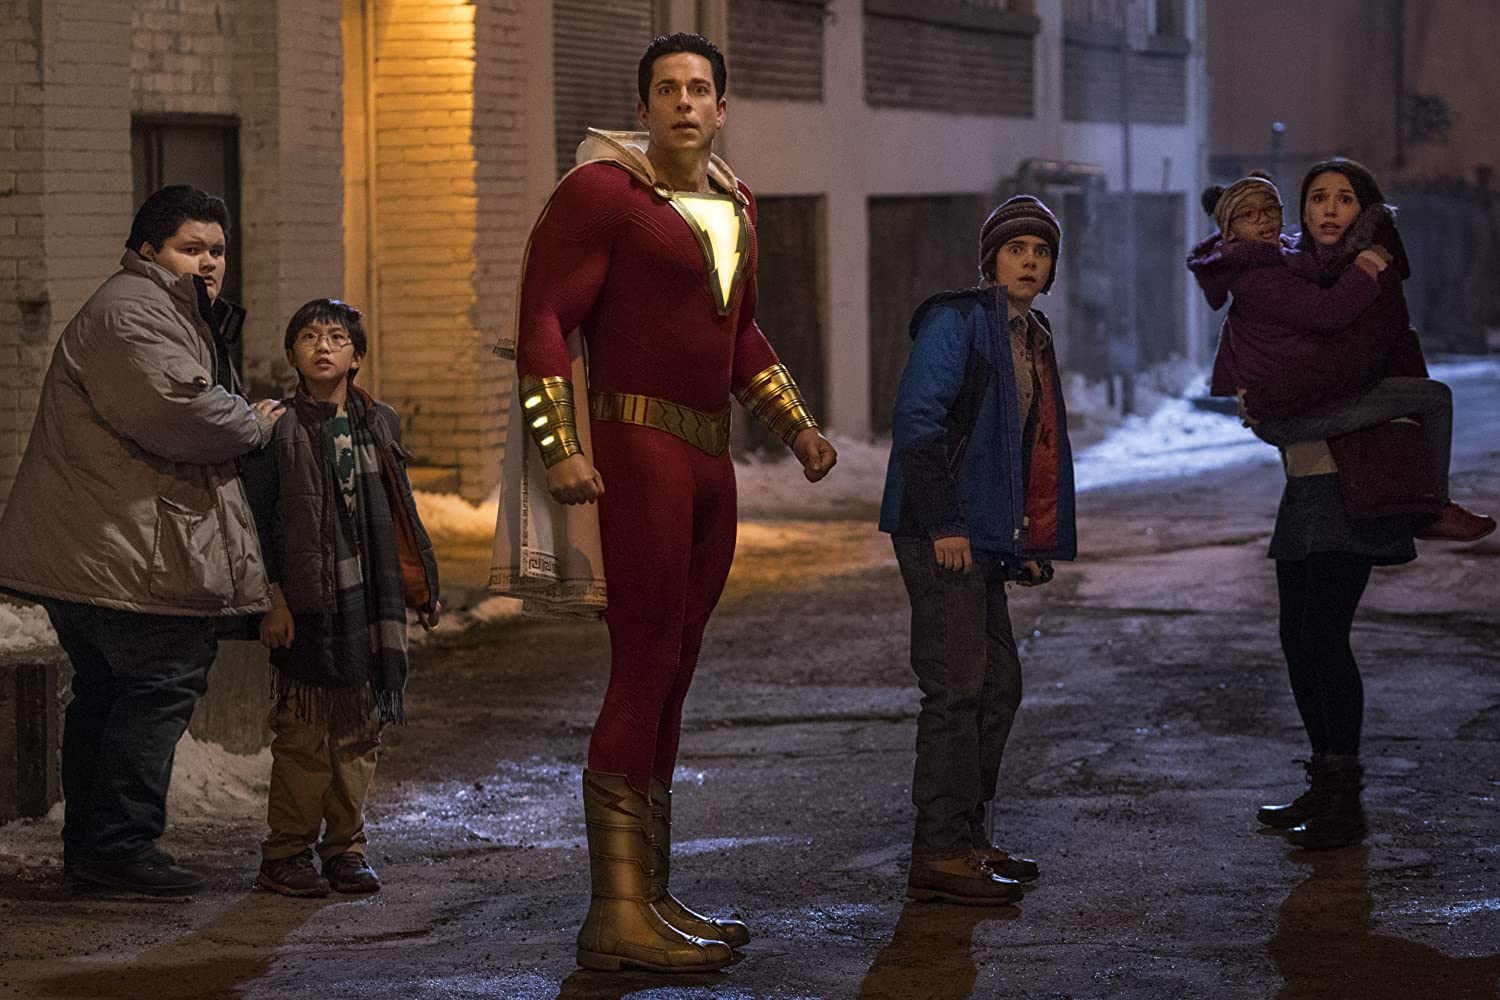 Zachary Levi, Grace Fulton, Jovan Armand, Jack Dylan Grazer, Ian Chen, and Faithe Herman in Shazam! (2019)